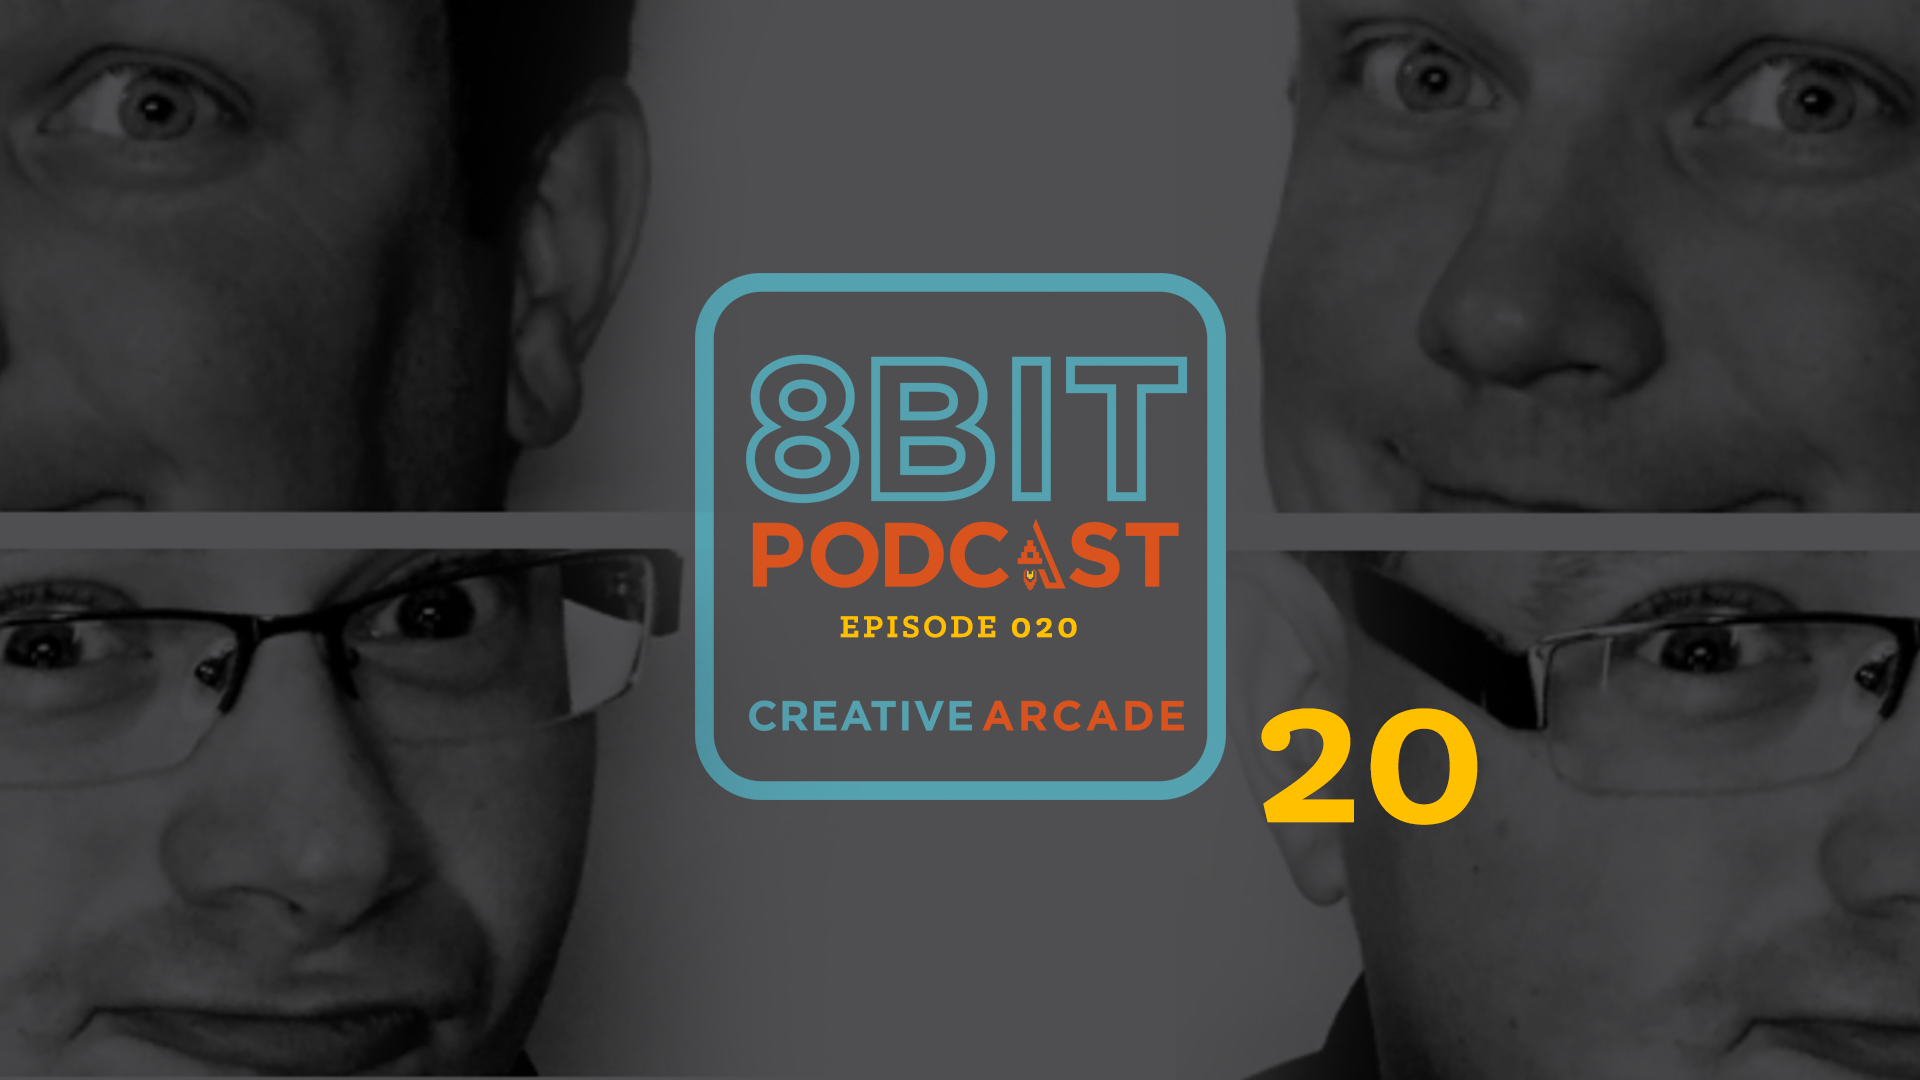 The 8Bit Podcast - Episode 020 Featured Image